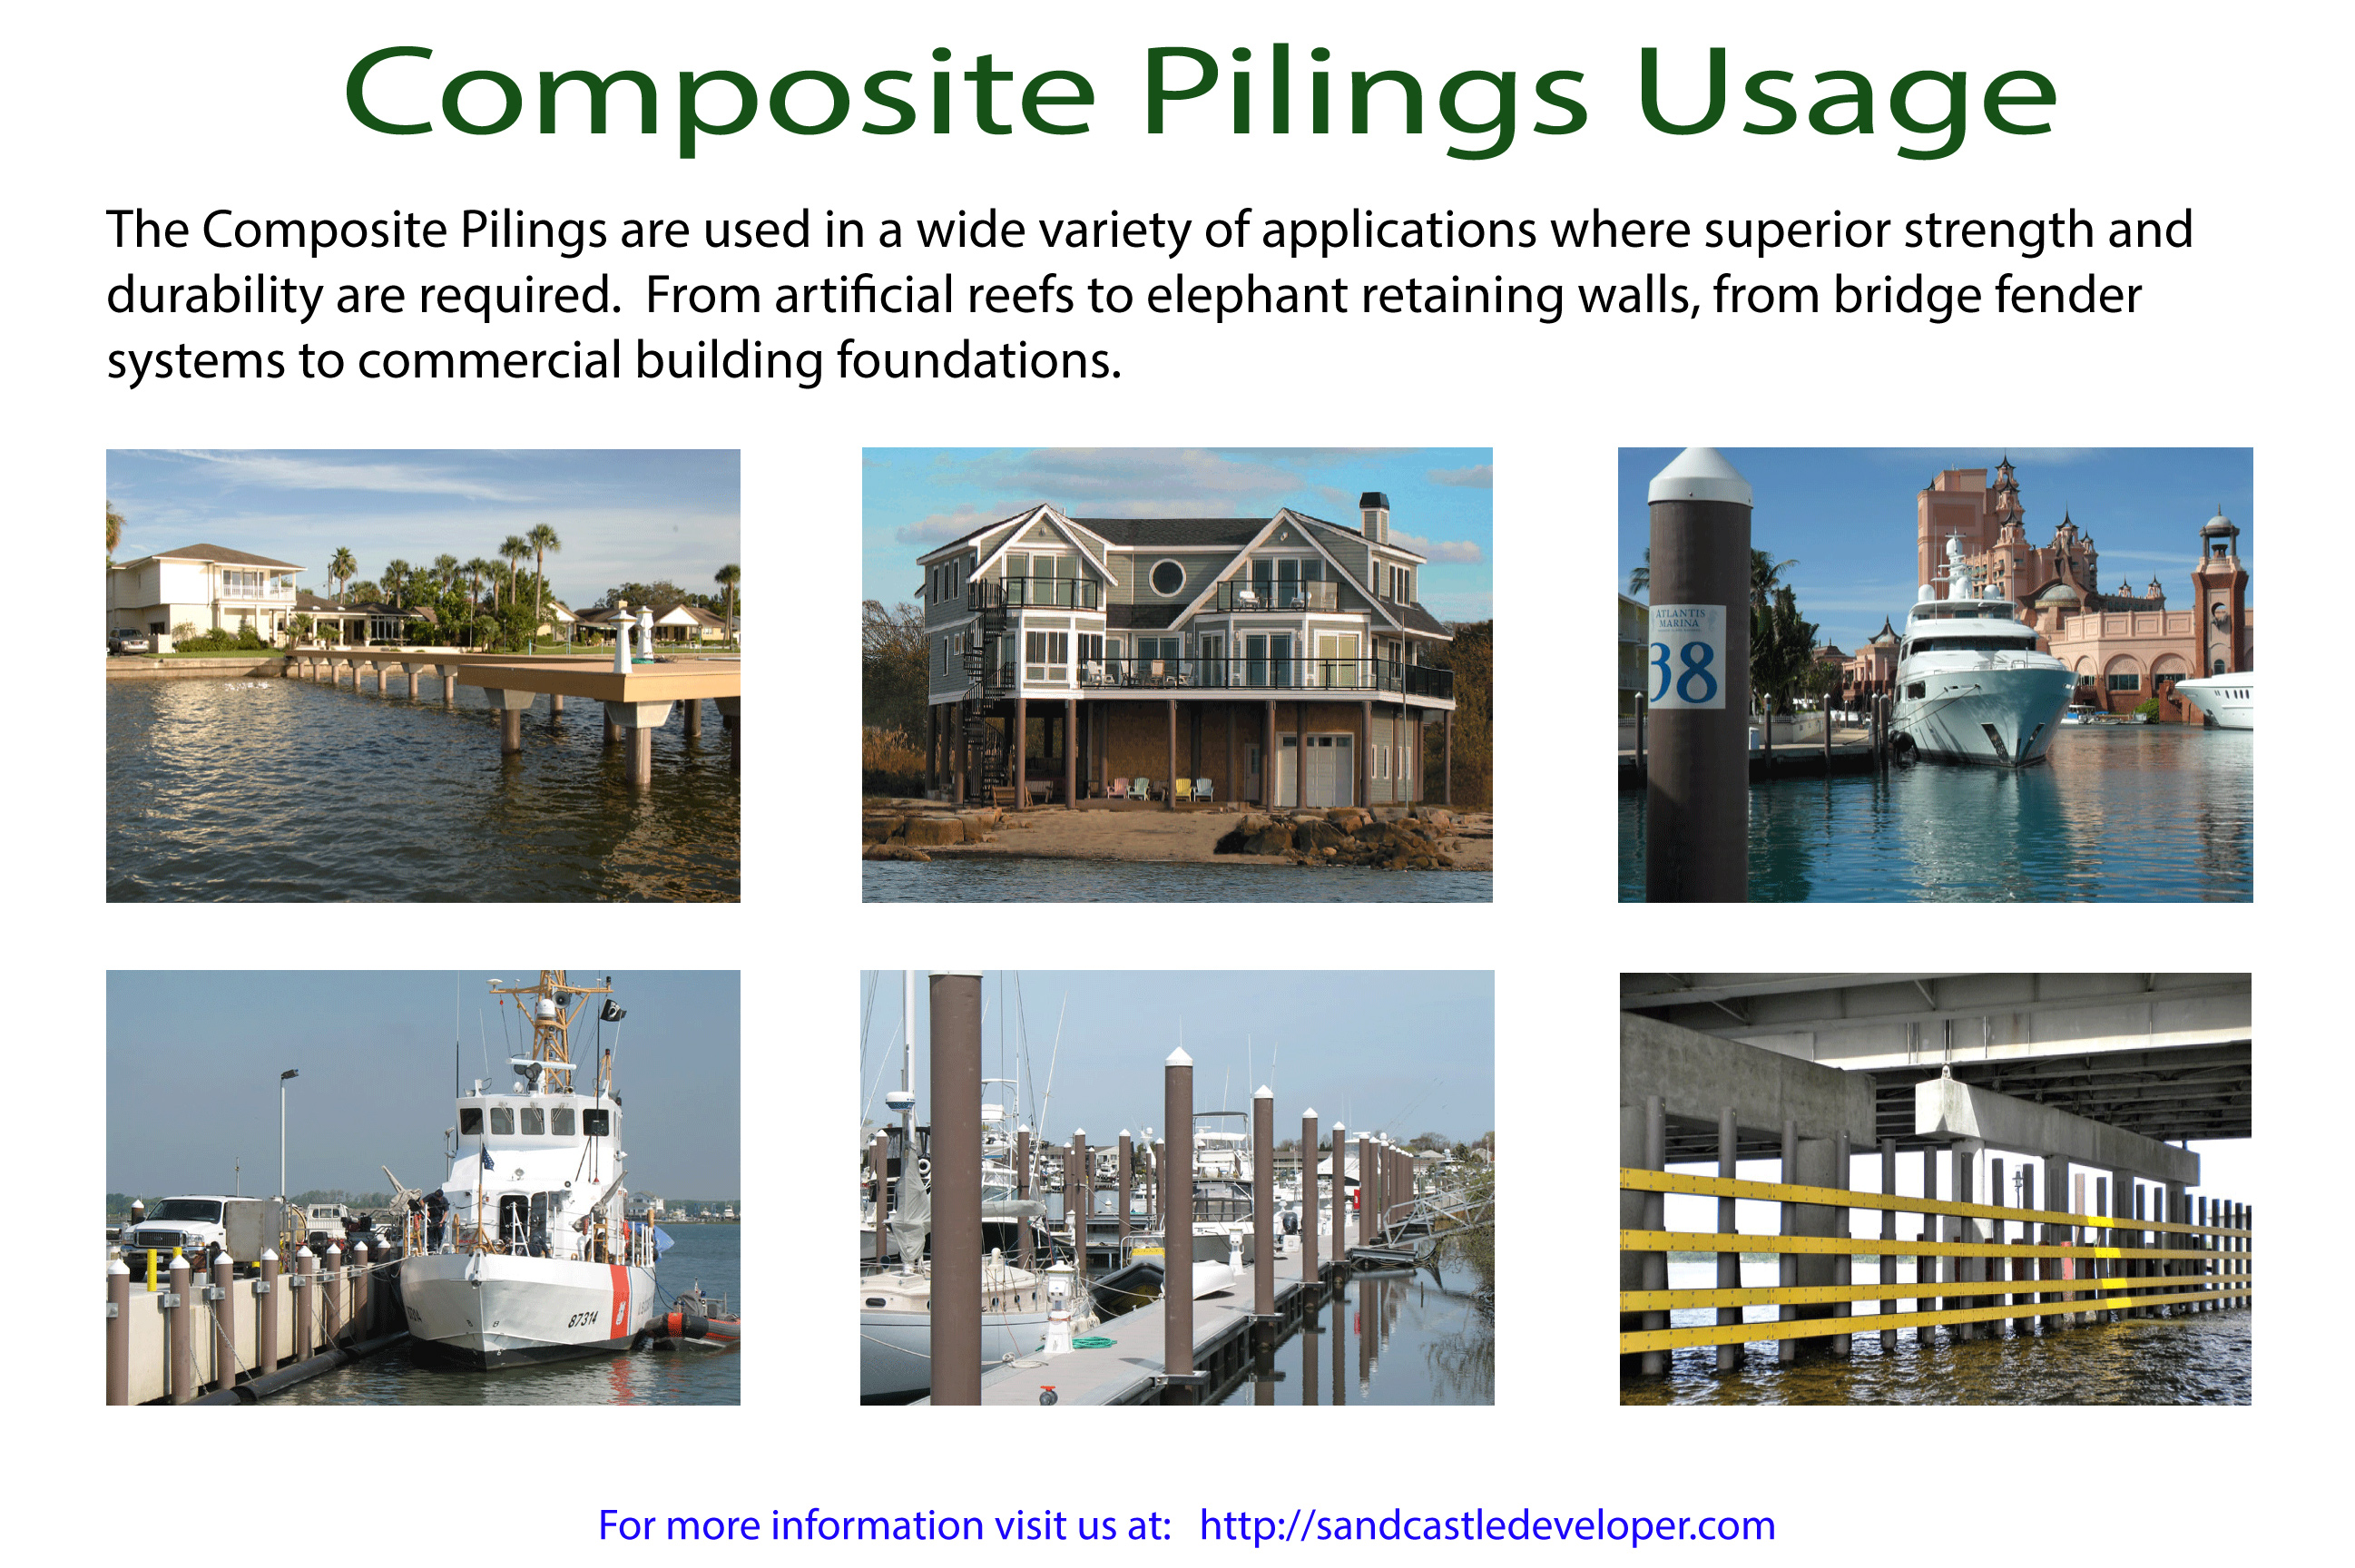 Fiberglass Composite Pilings Usage